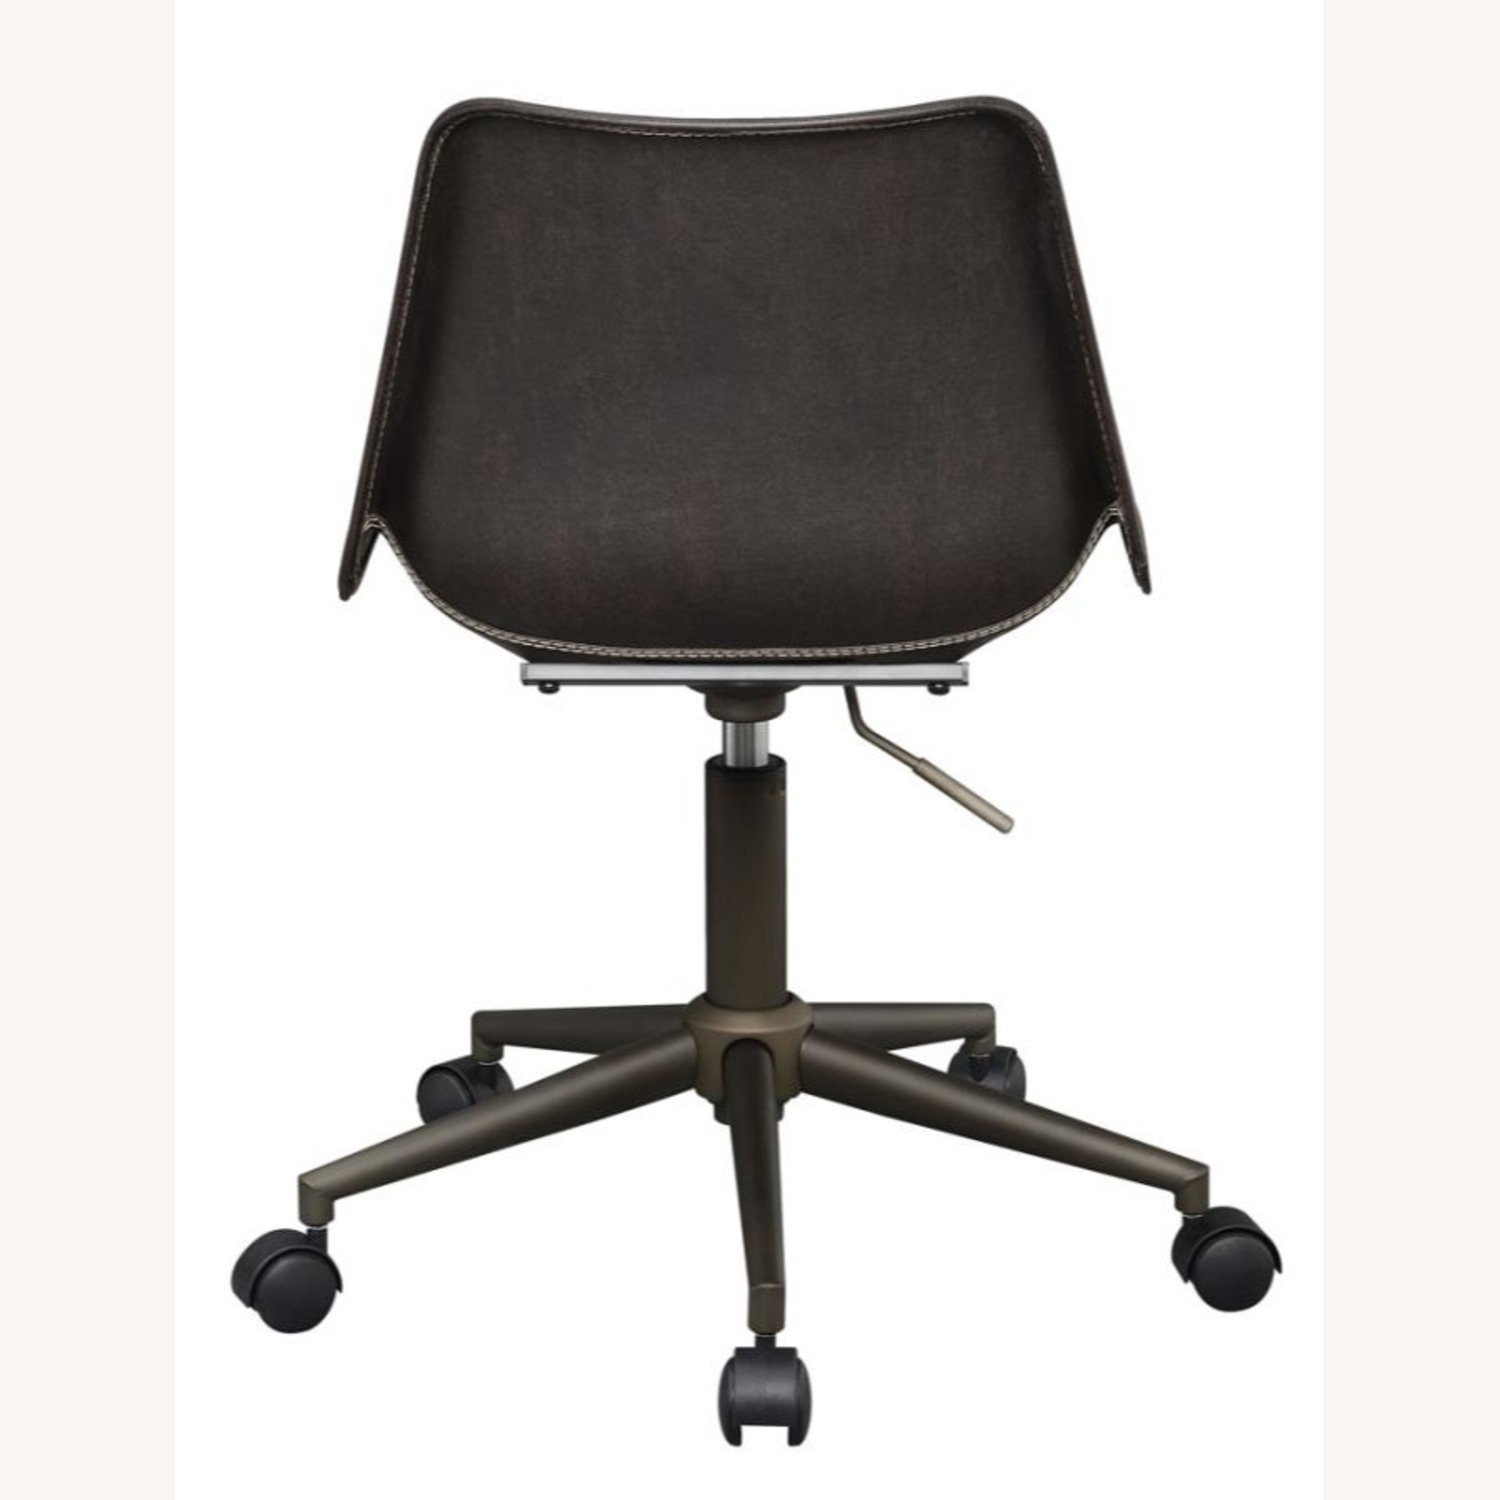 Office Chair In Brown Leatherette & Bronze Base - image-3